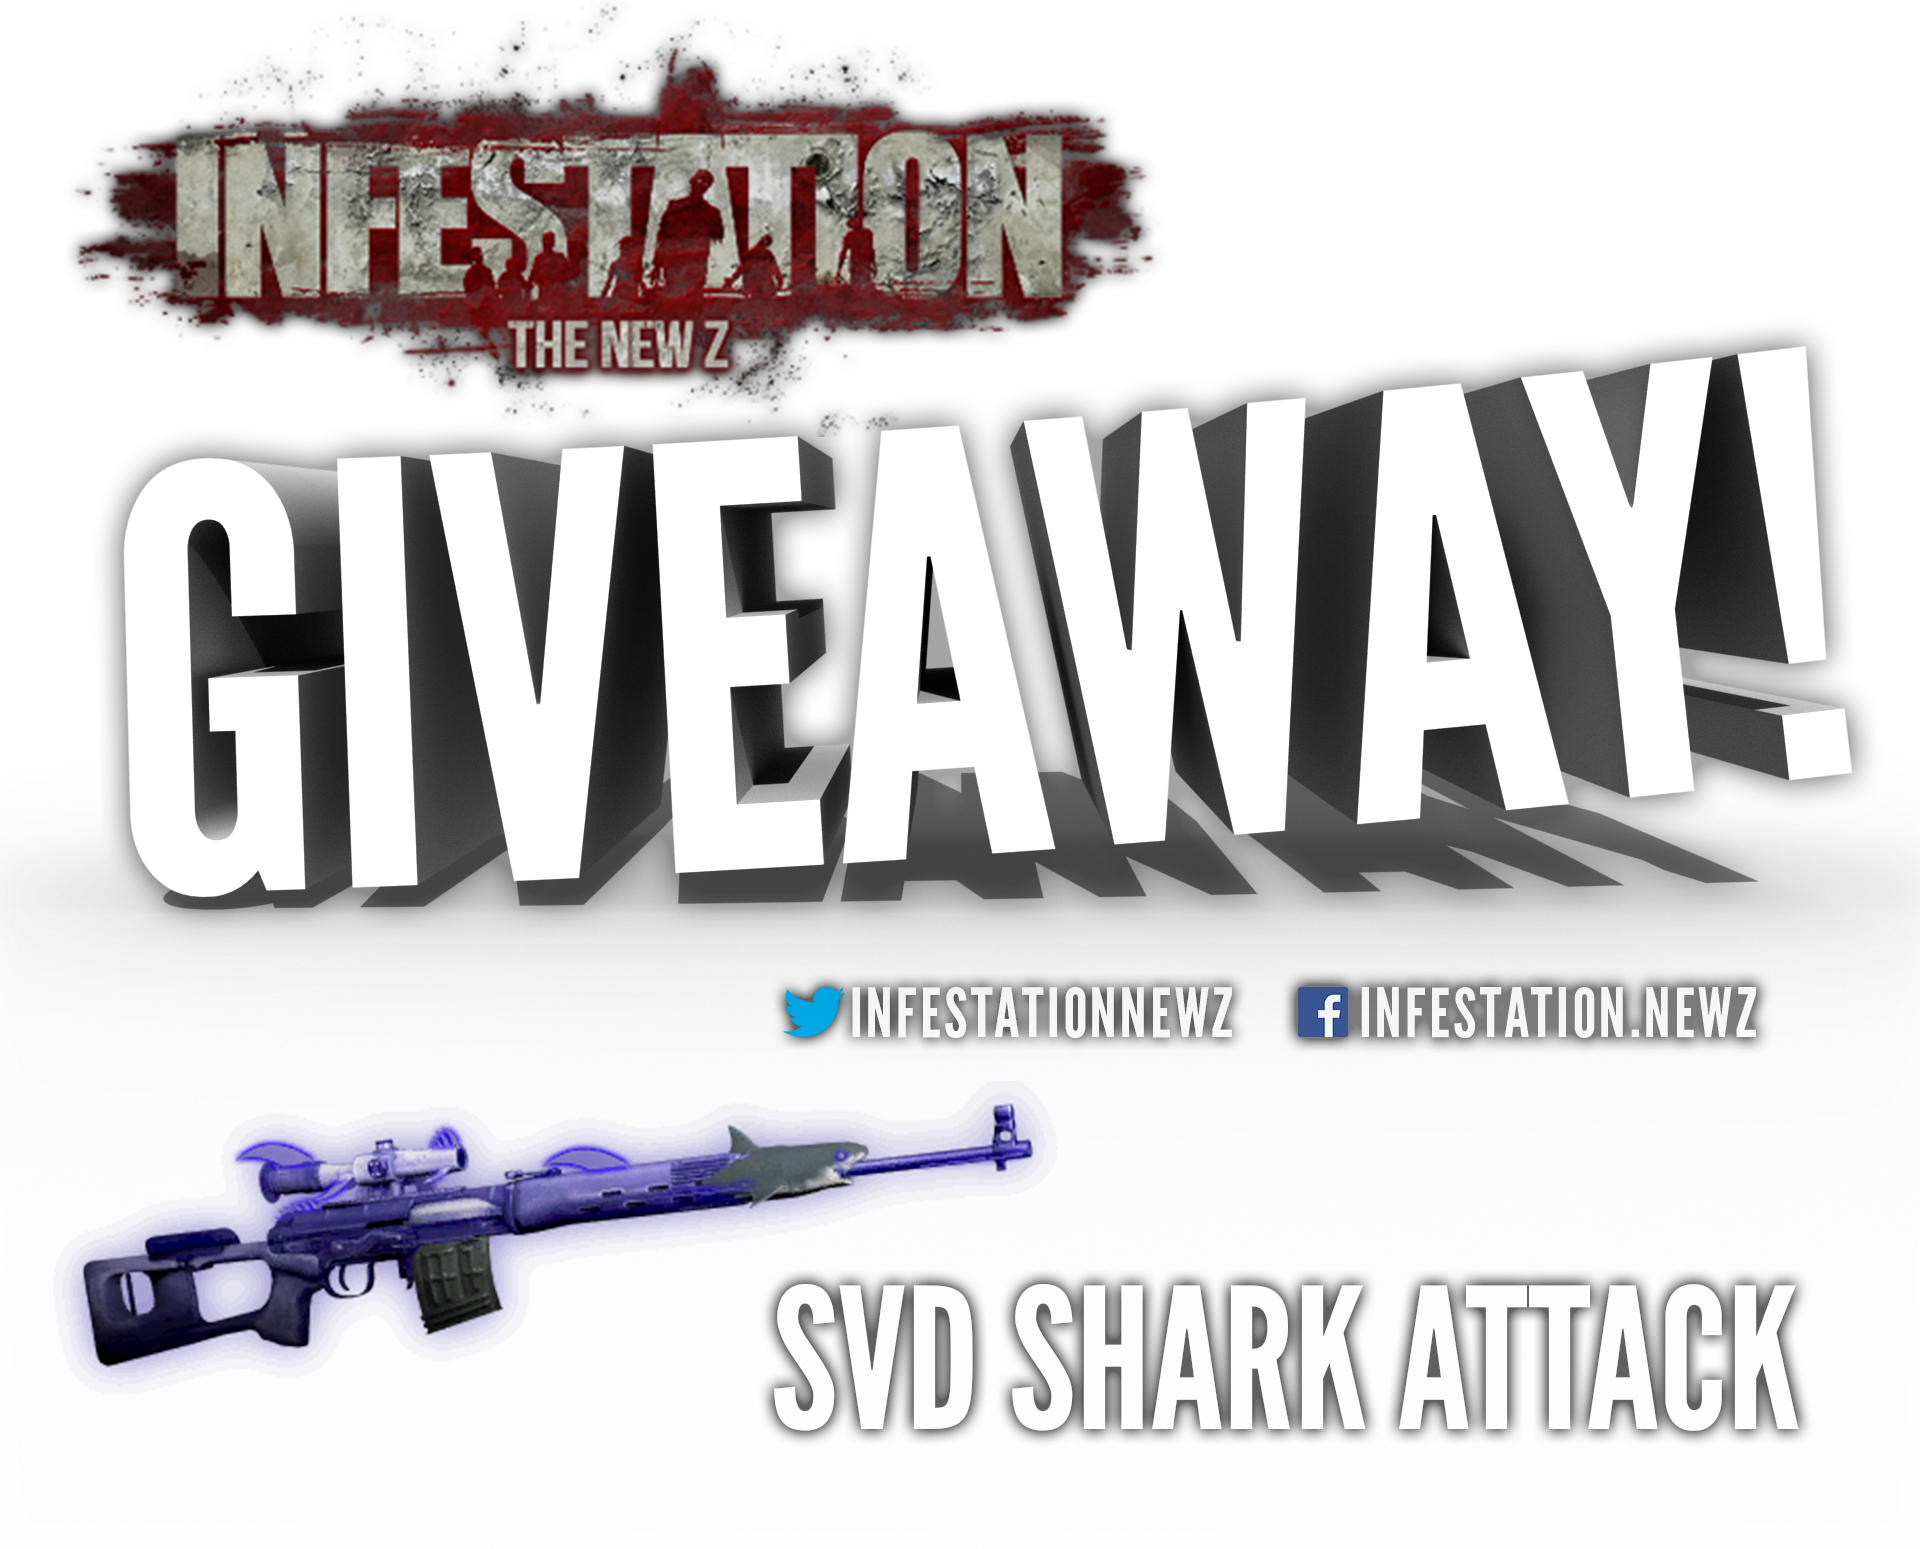 Giveaway transparent gun. Infestation the new z